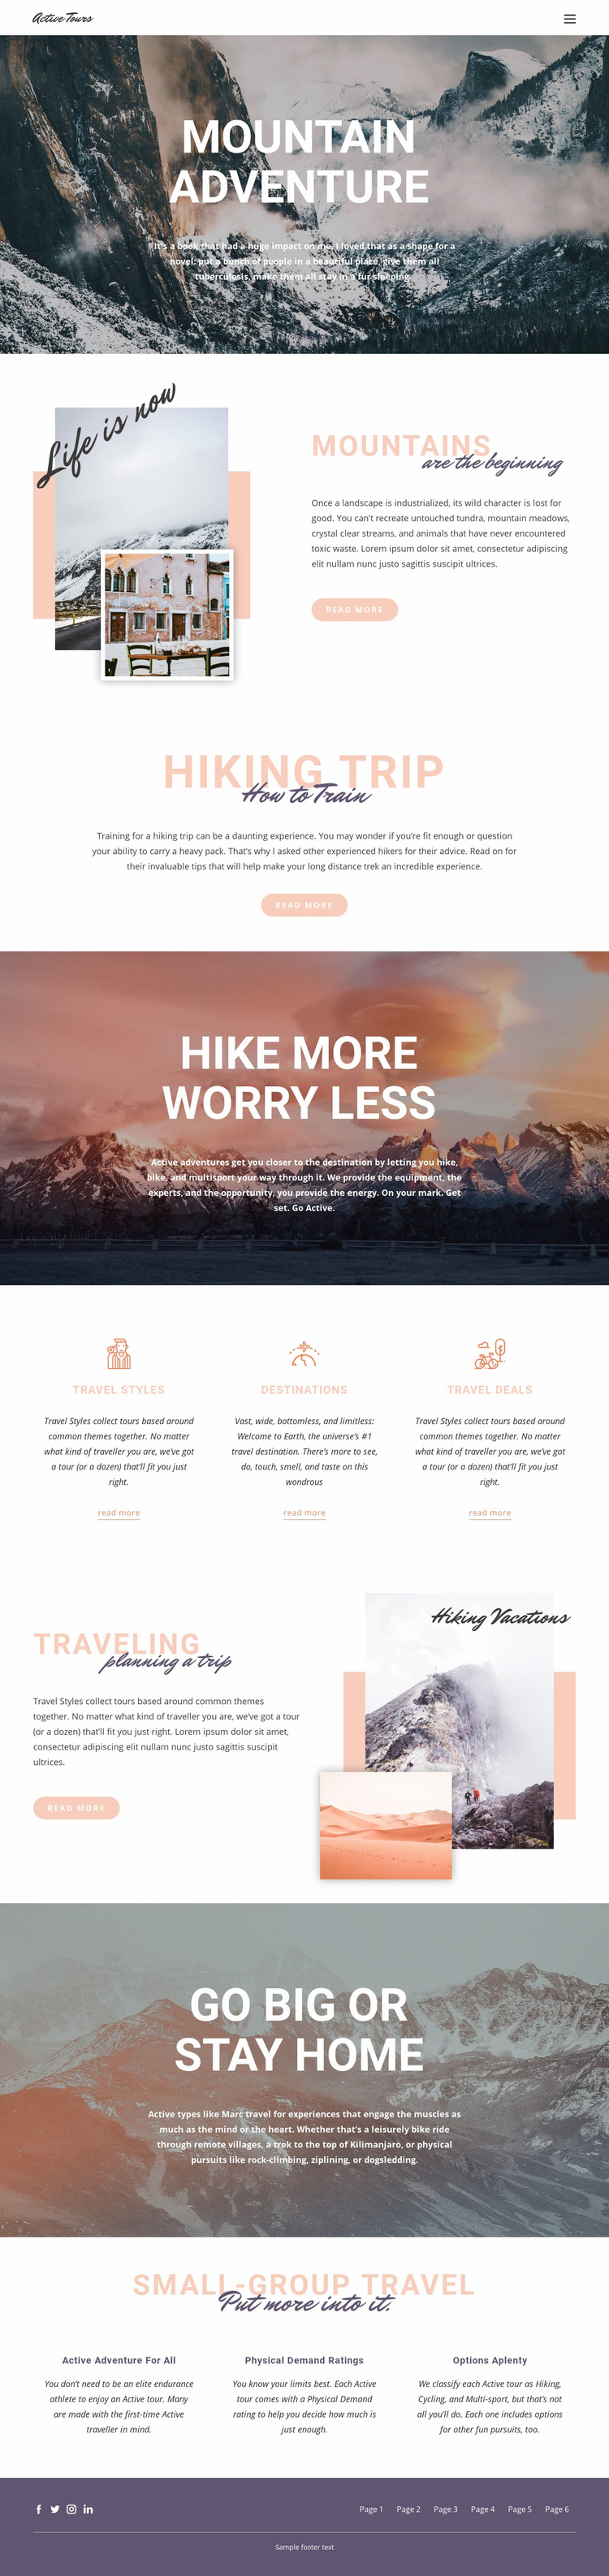 Guided backpacking trips Web Page Design